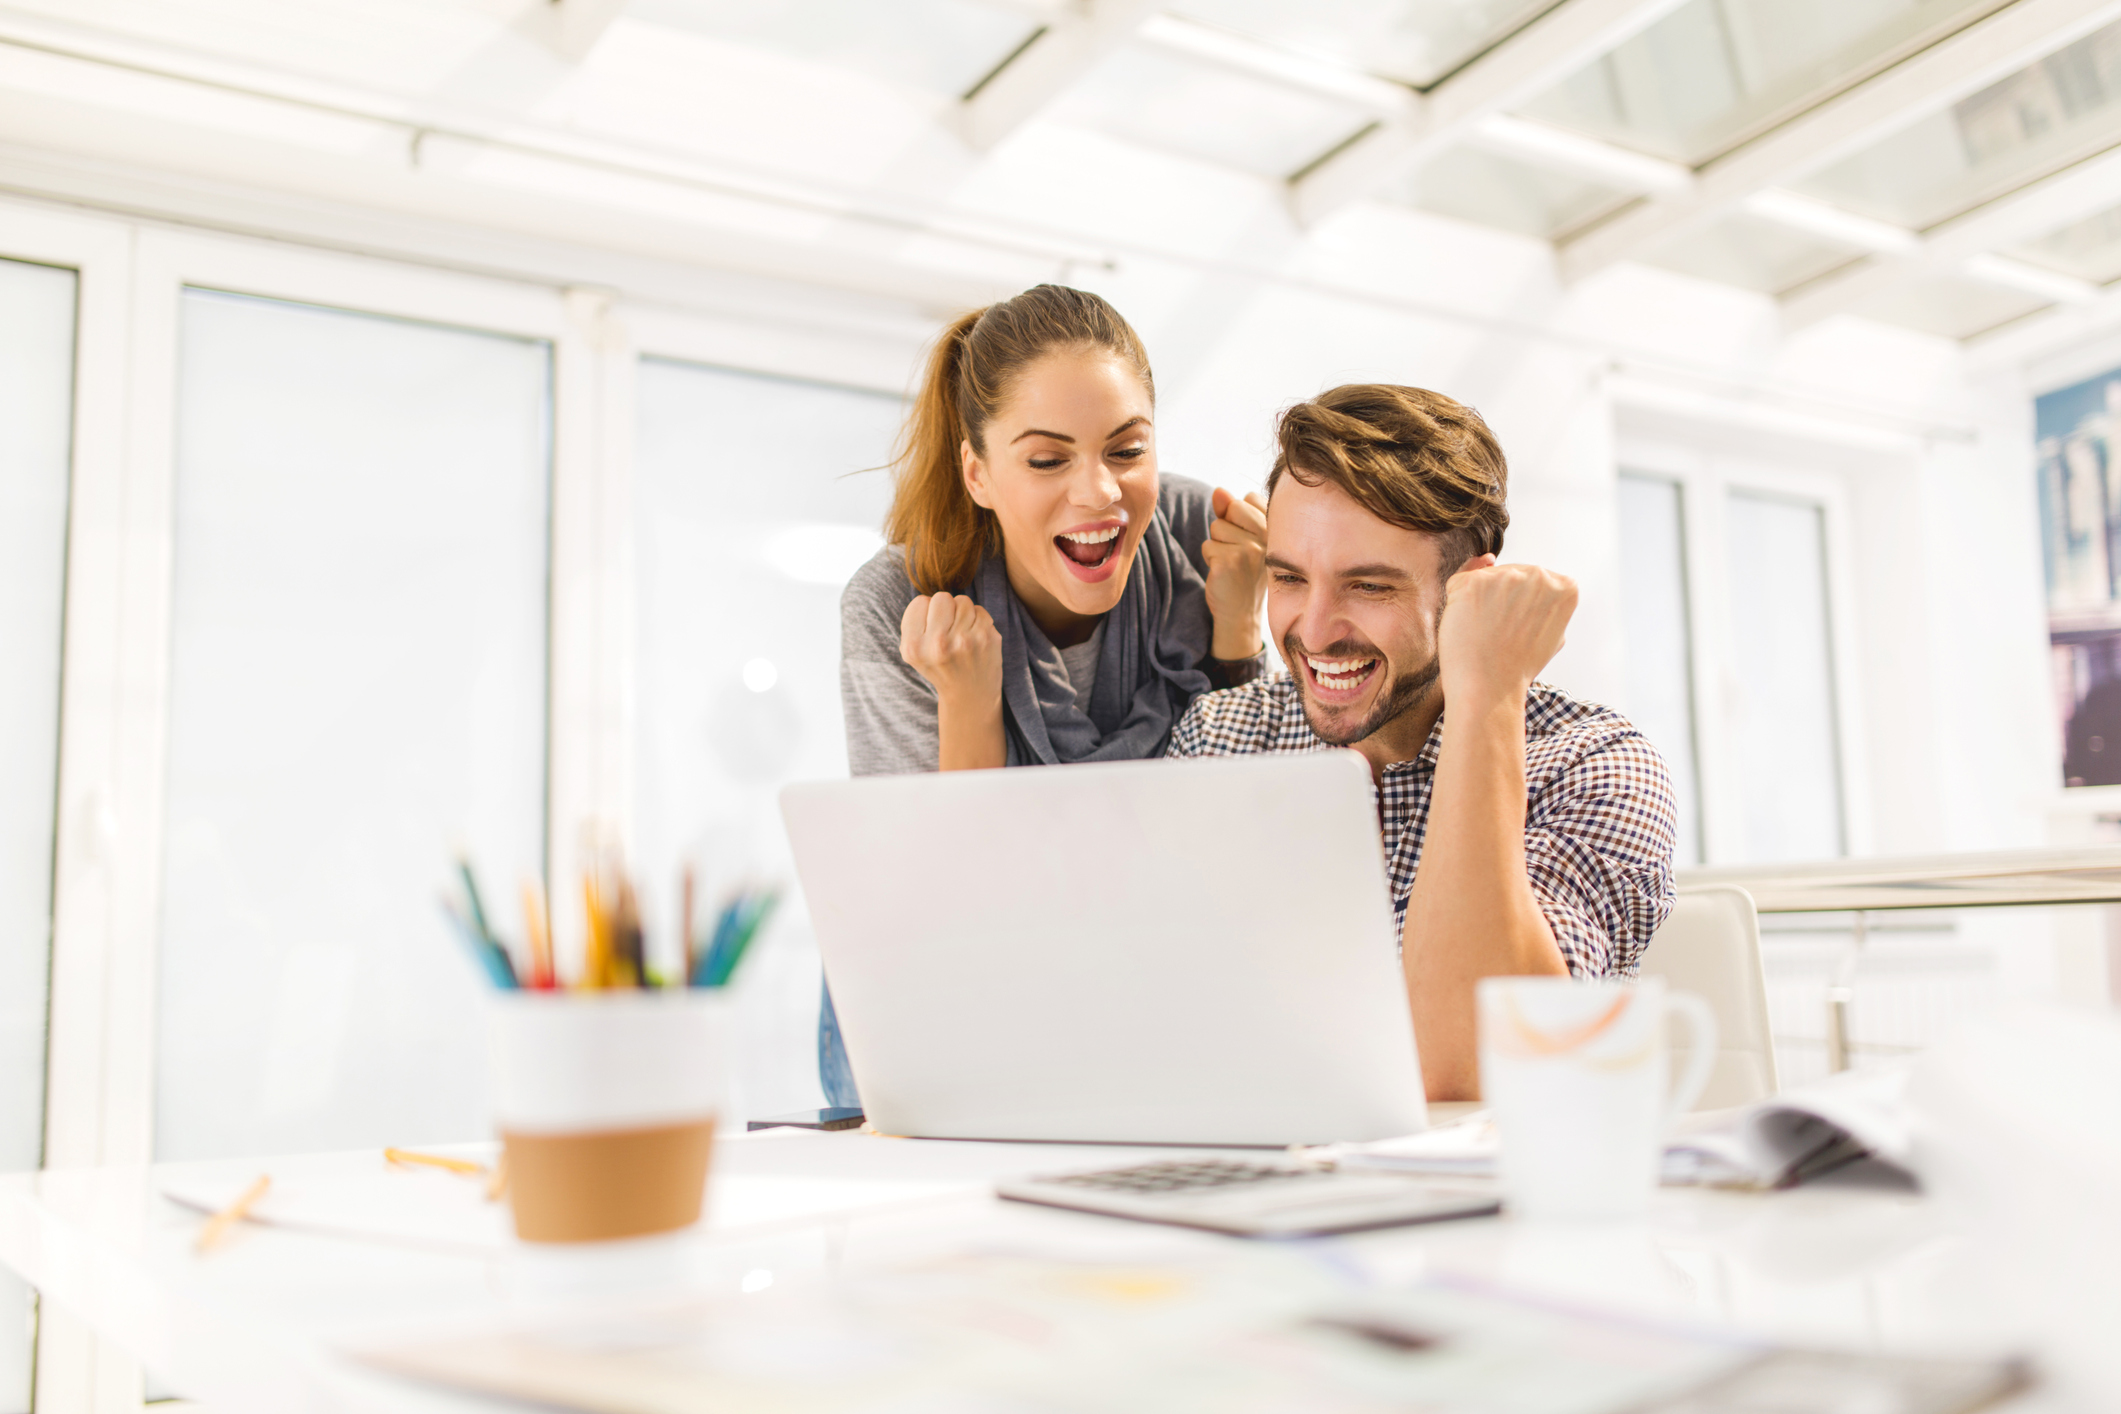 Man and woman excited about changing the culture of their organization